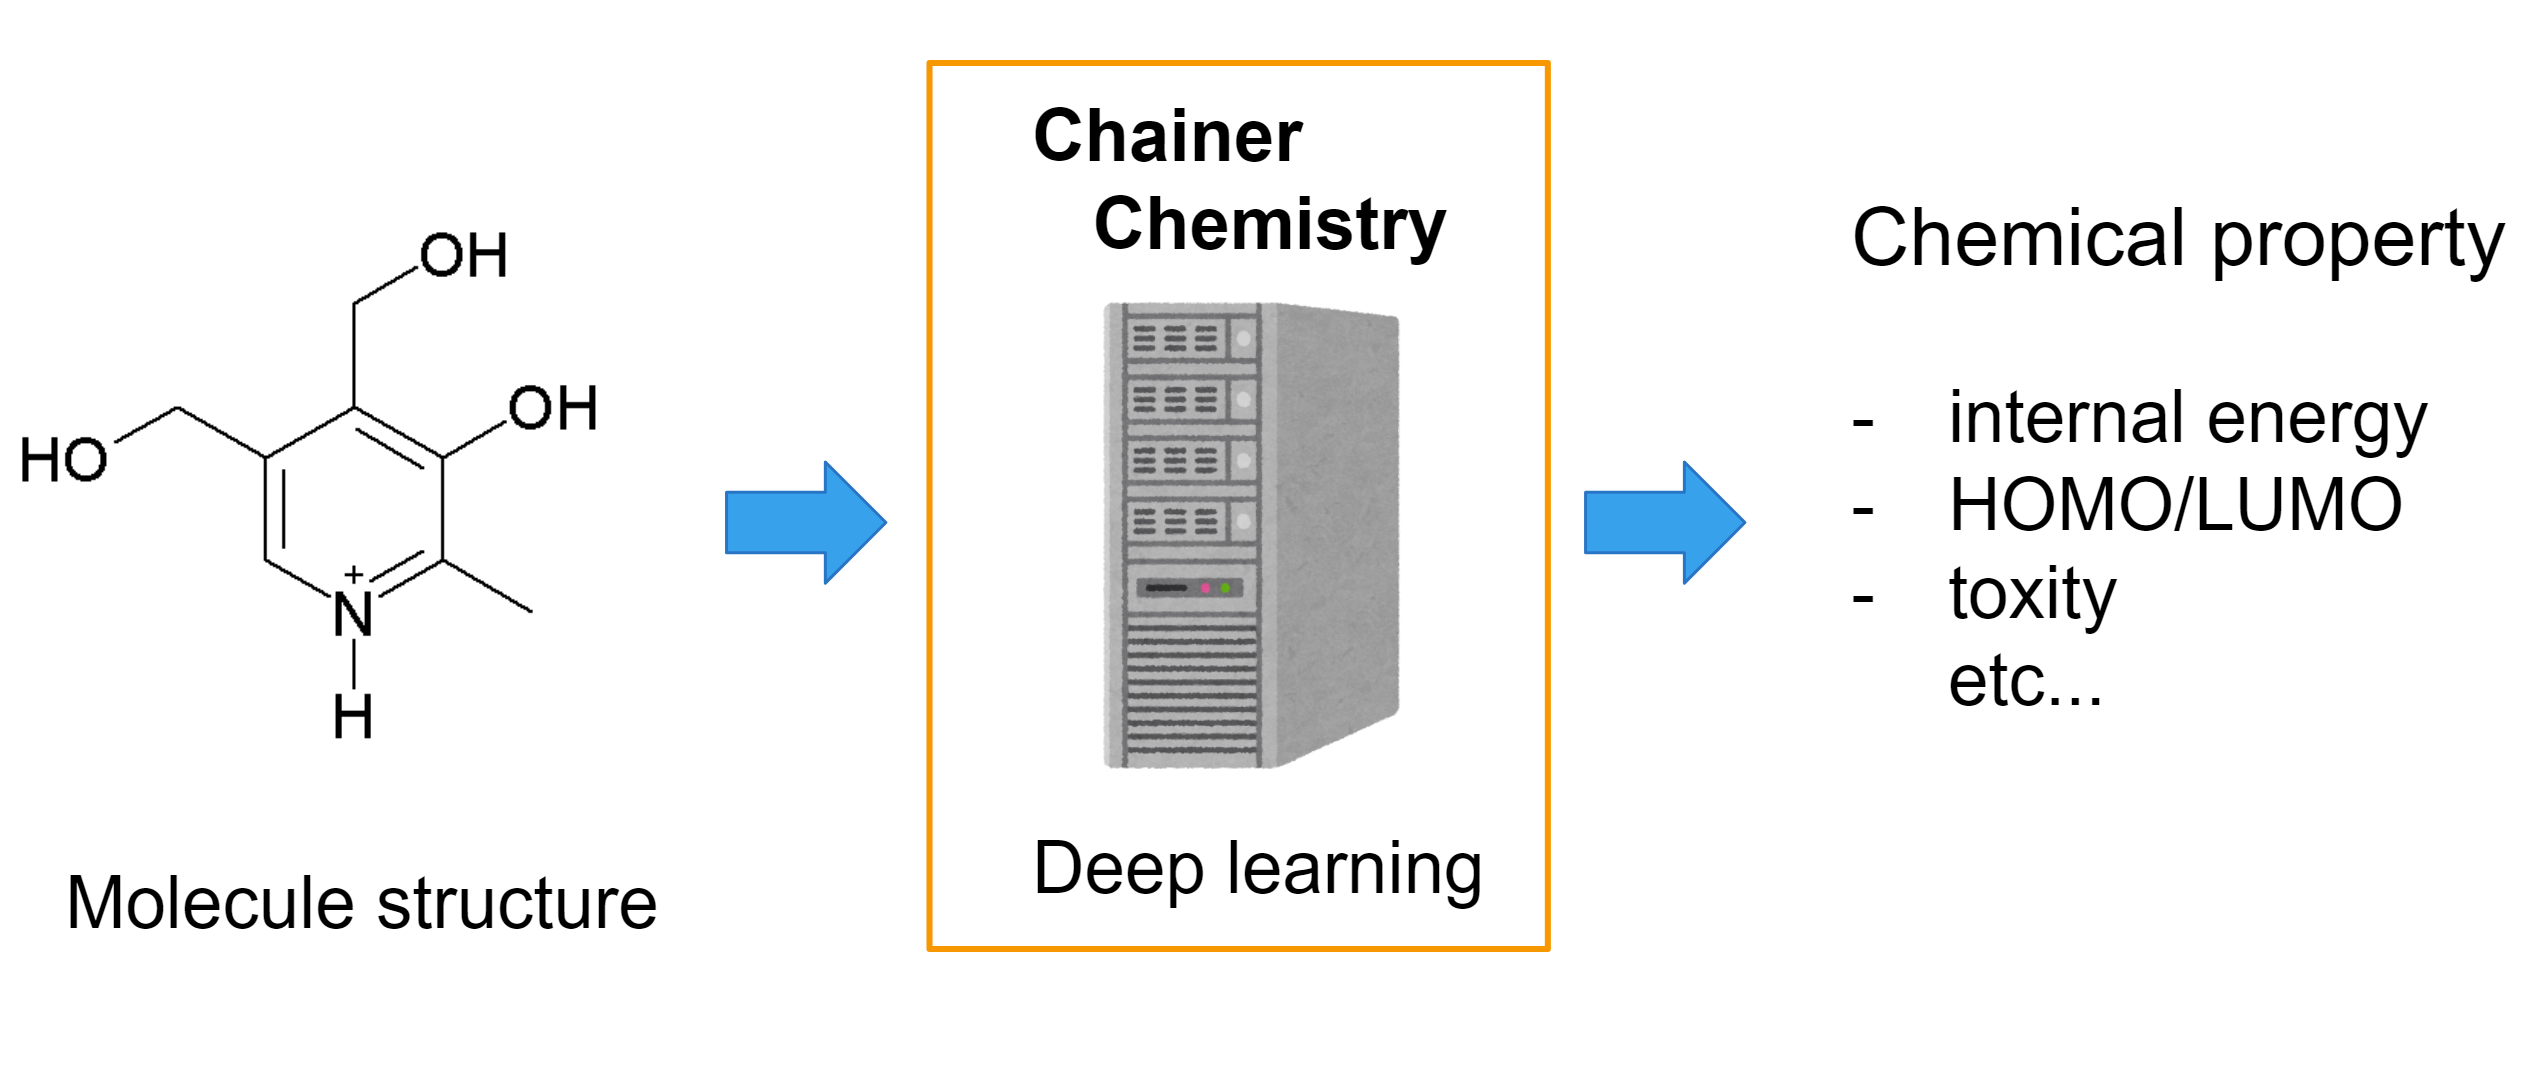 Chainer Chemistry Overview